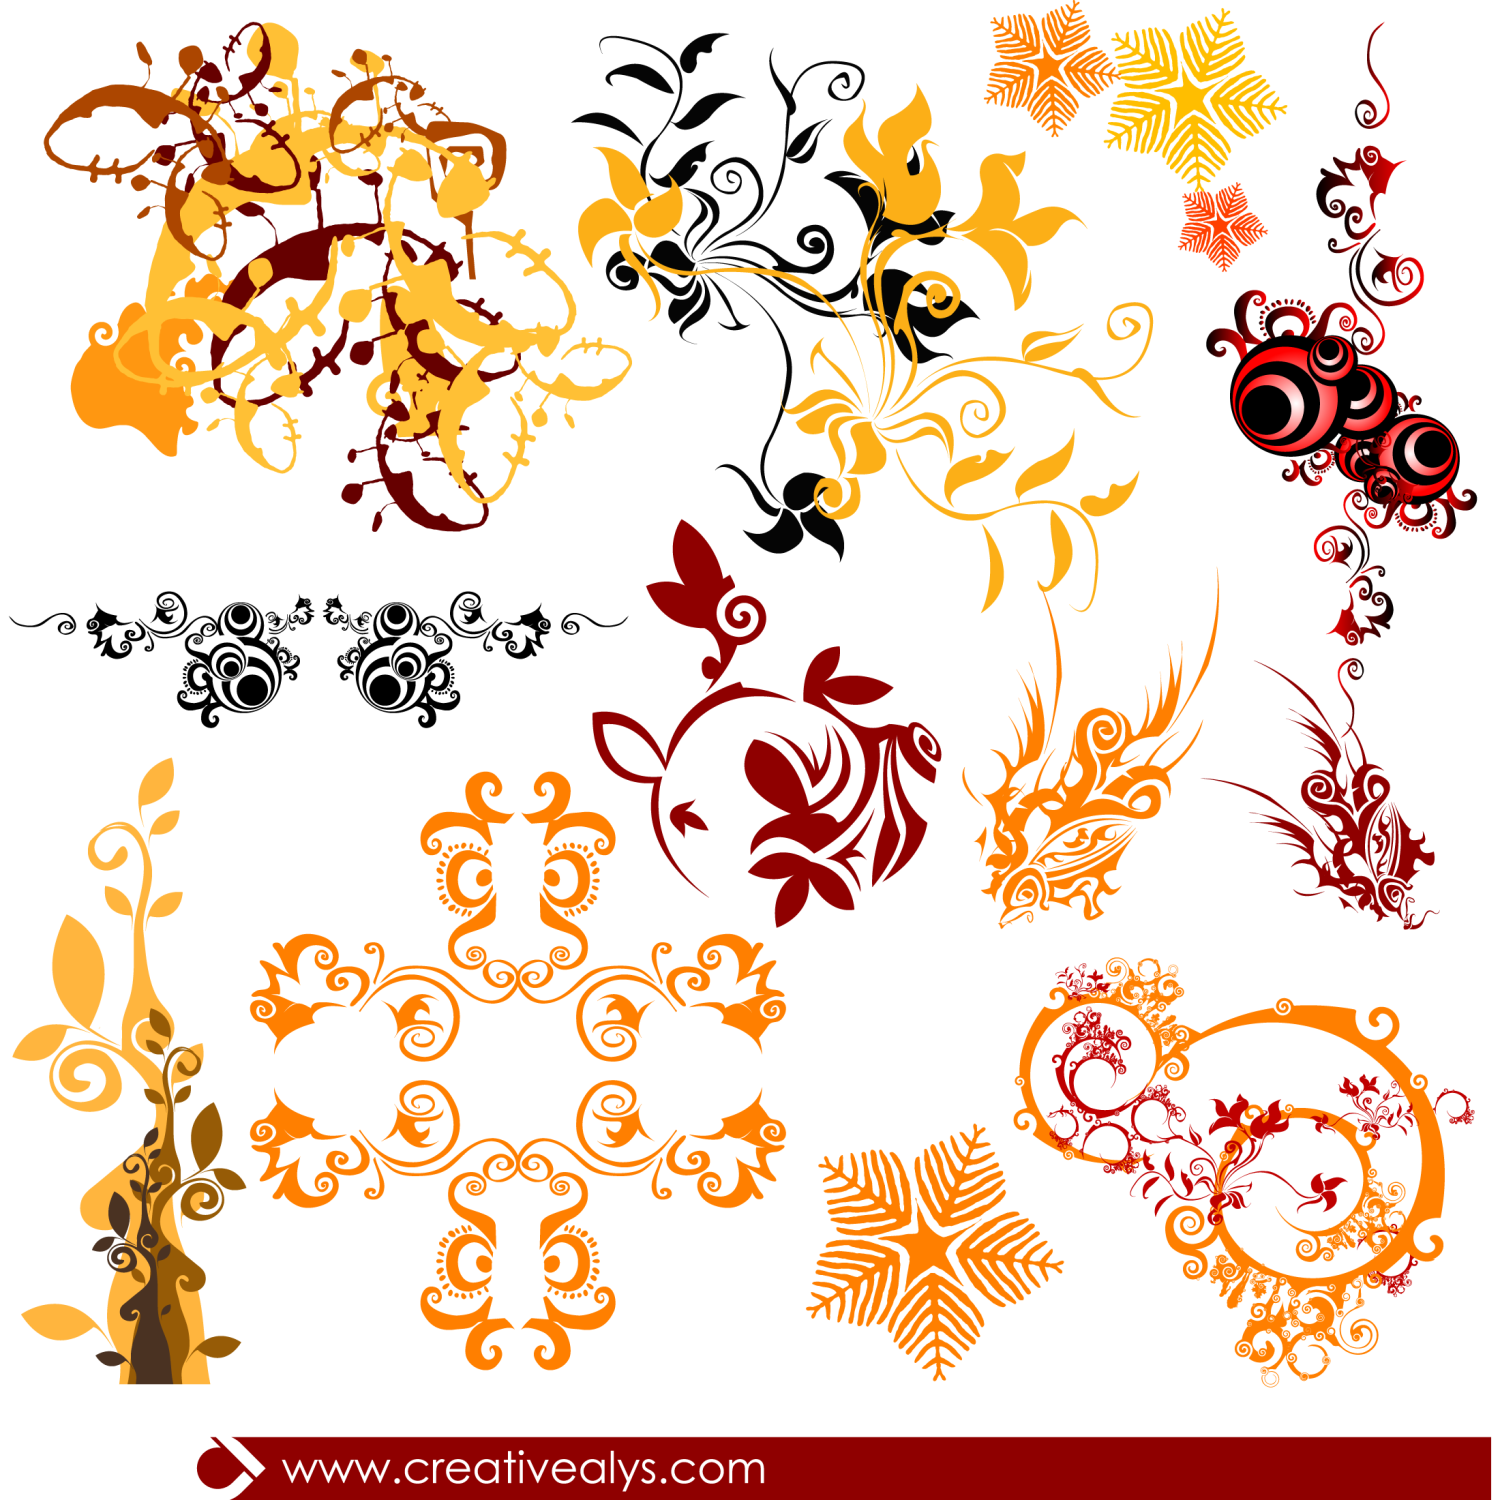 Beautiful swirls and florals to make your graphic designs more beautiful and appealing. You can use these in your web pages or blog themes.